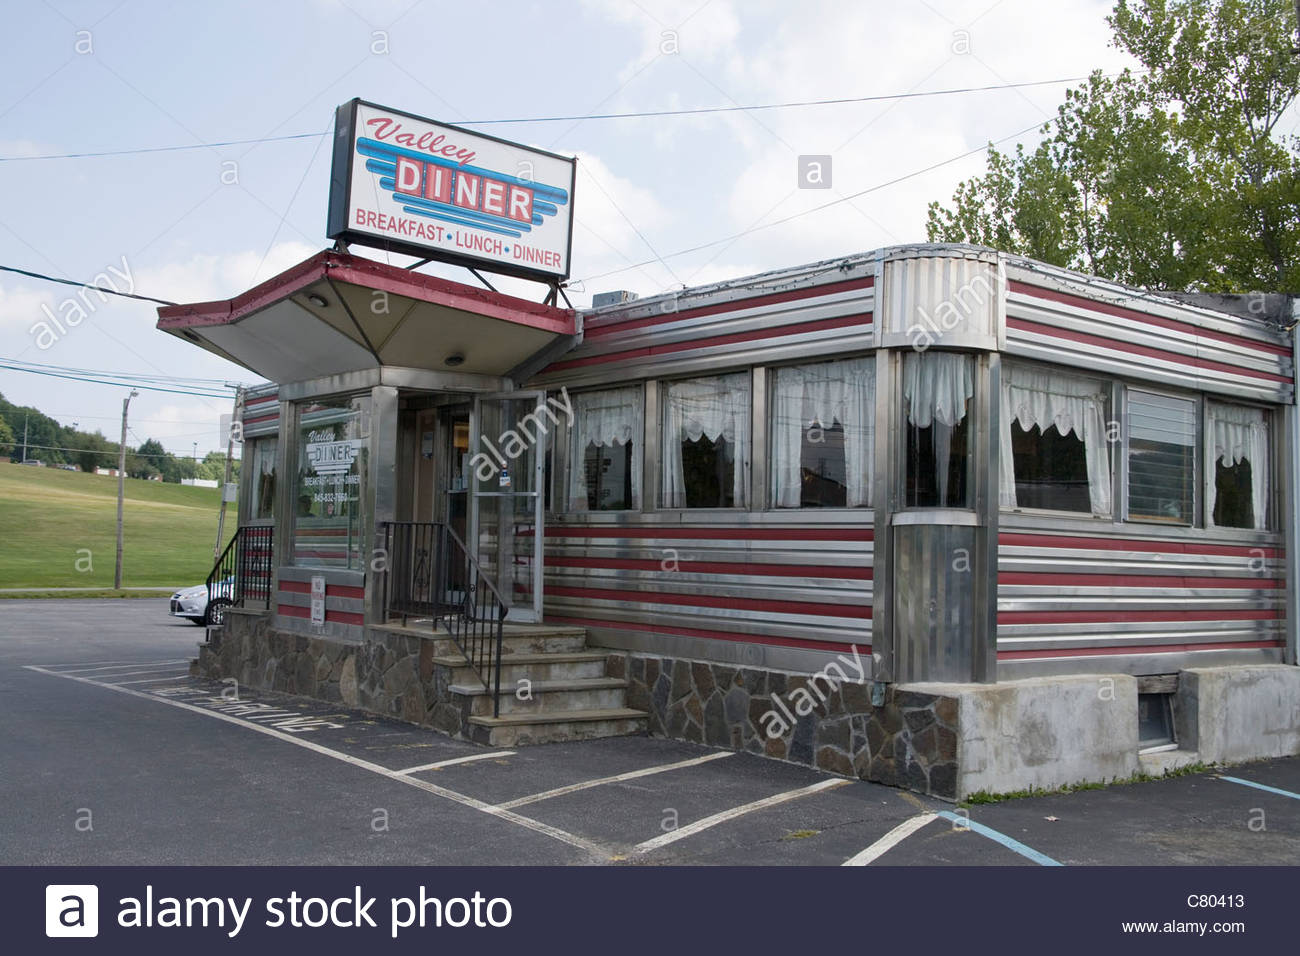 dover valley diner Stock Photo